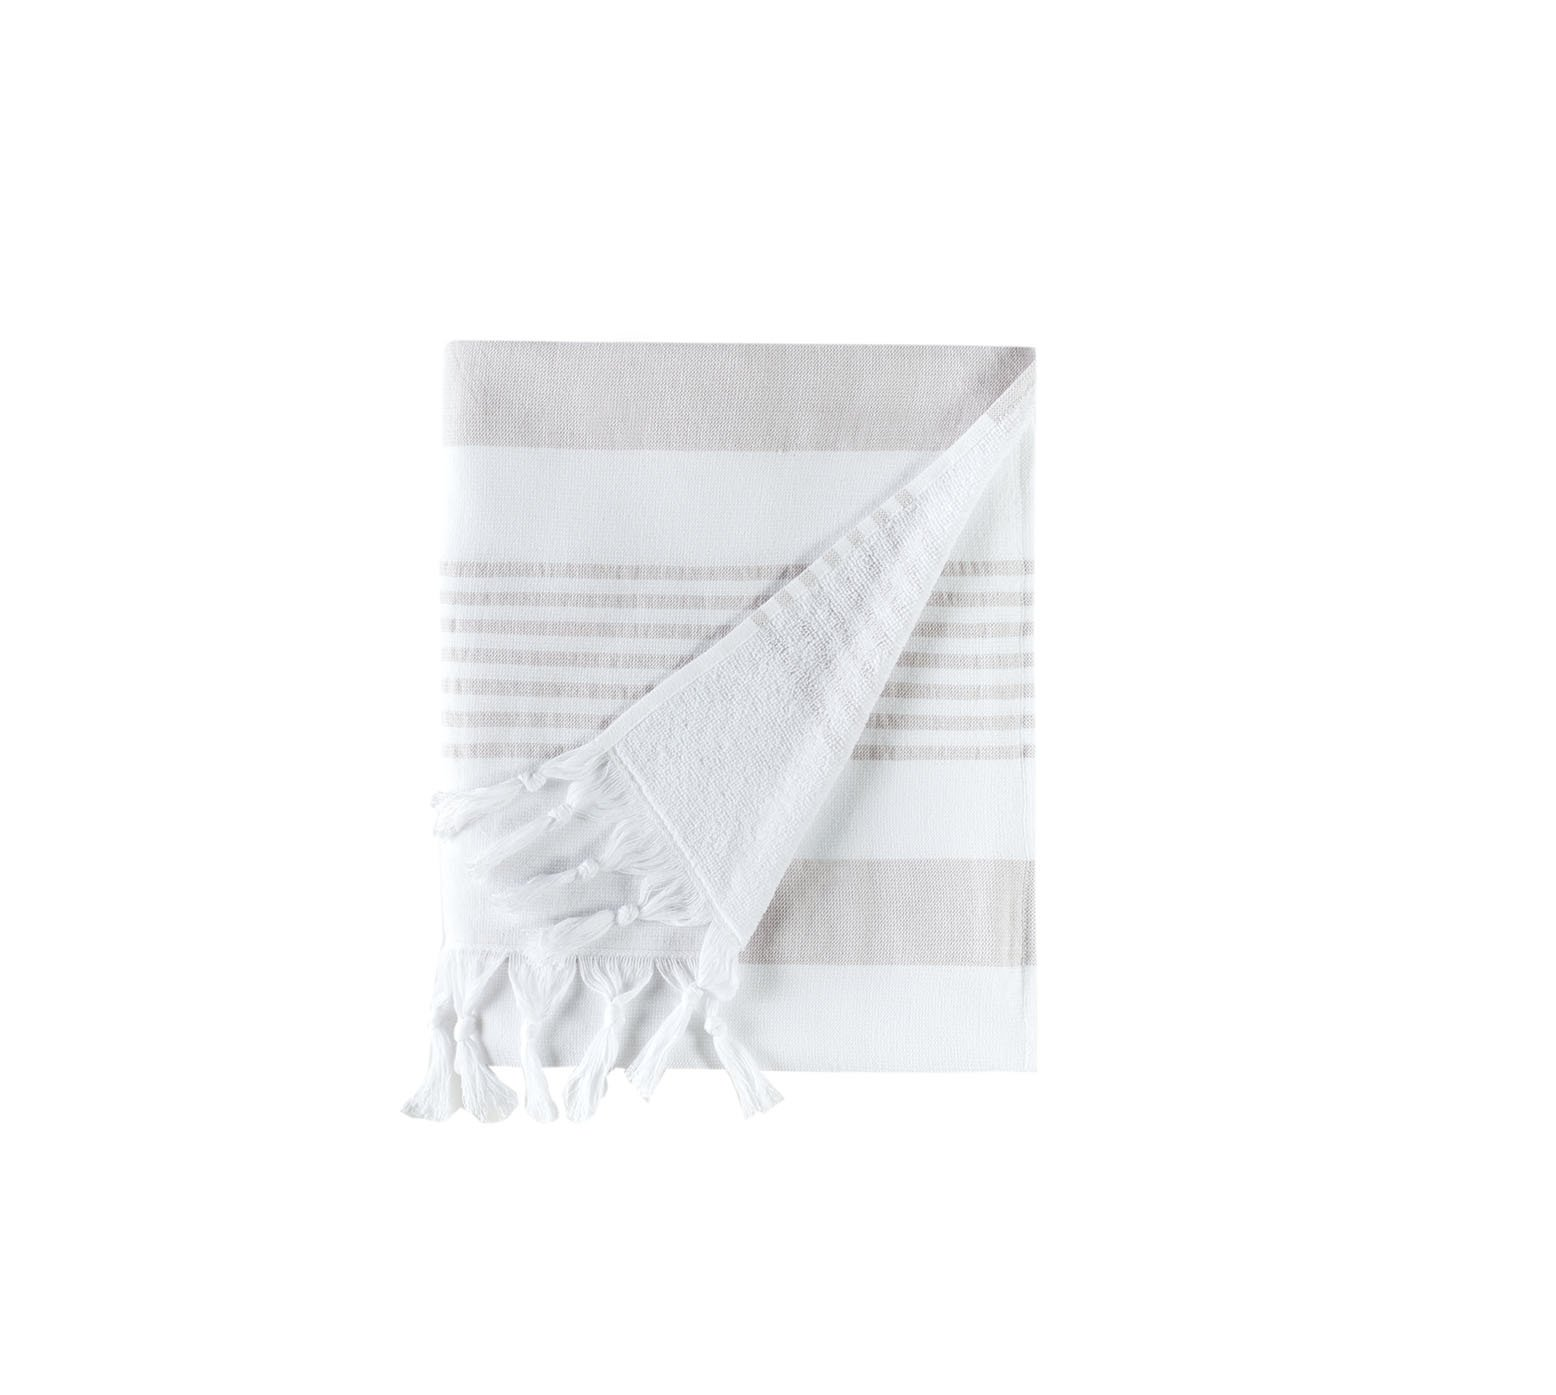 Cottonna 100% Turkish Cotton Fouta Towel | Peshtemal Front with Terry Loop Back | Beach Spa and Bath Towel (White-Moon)